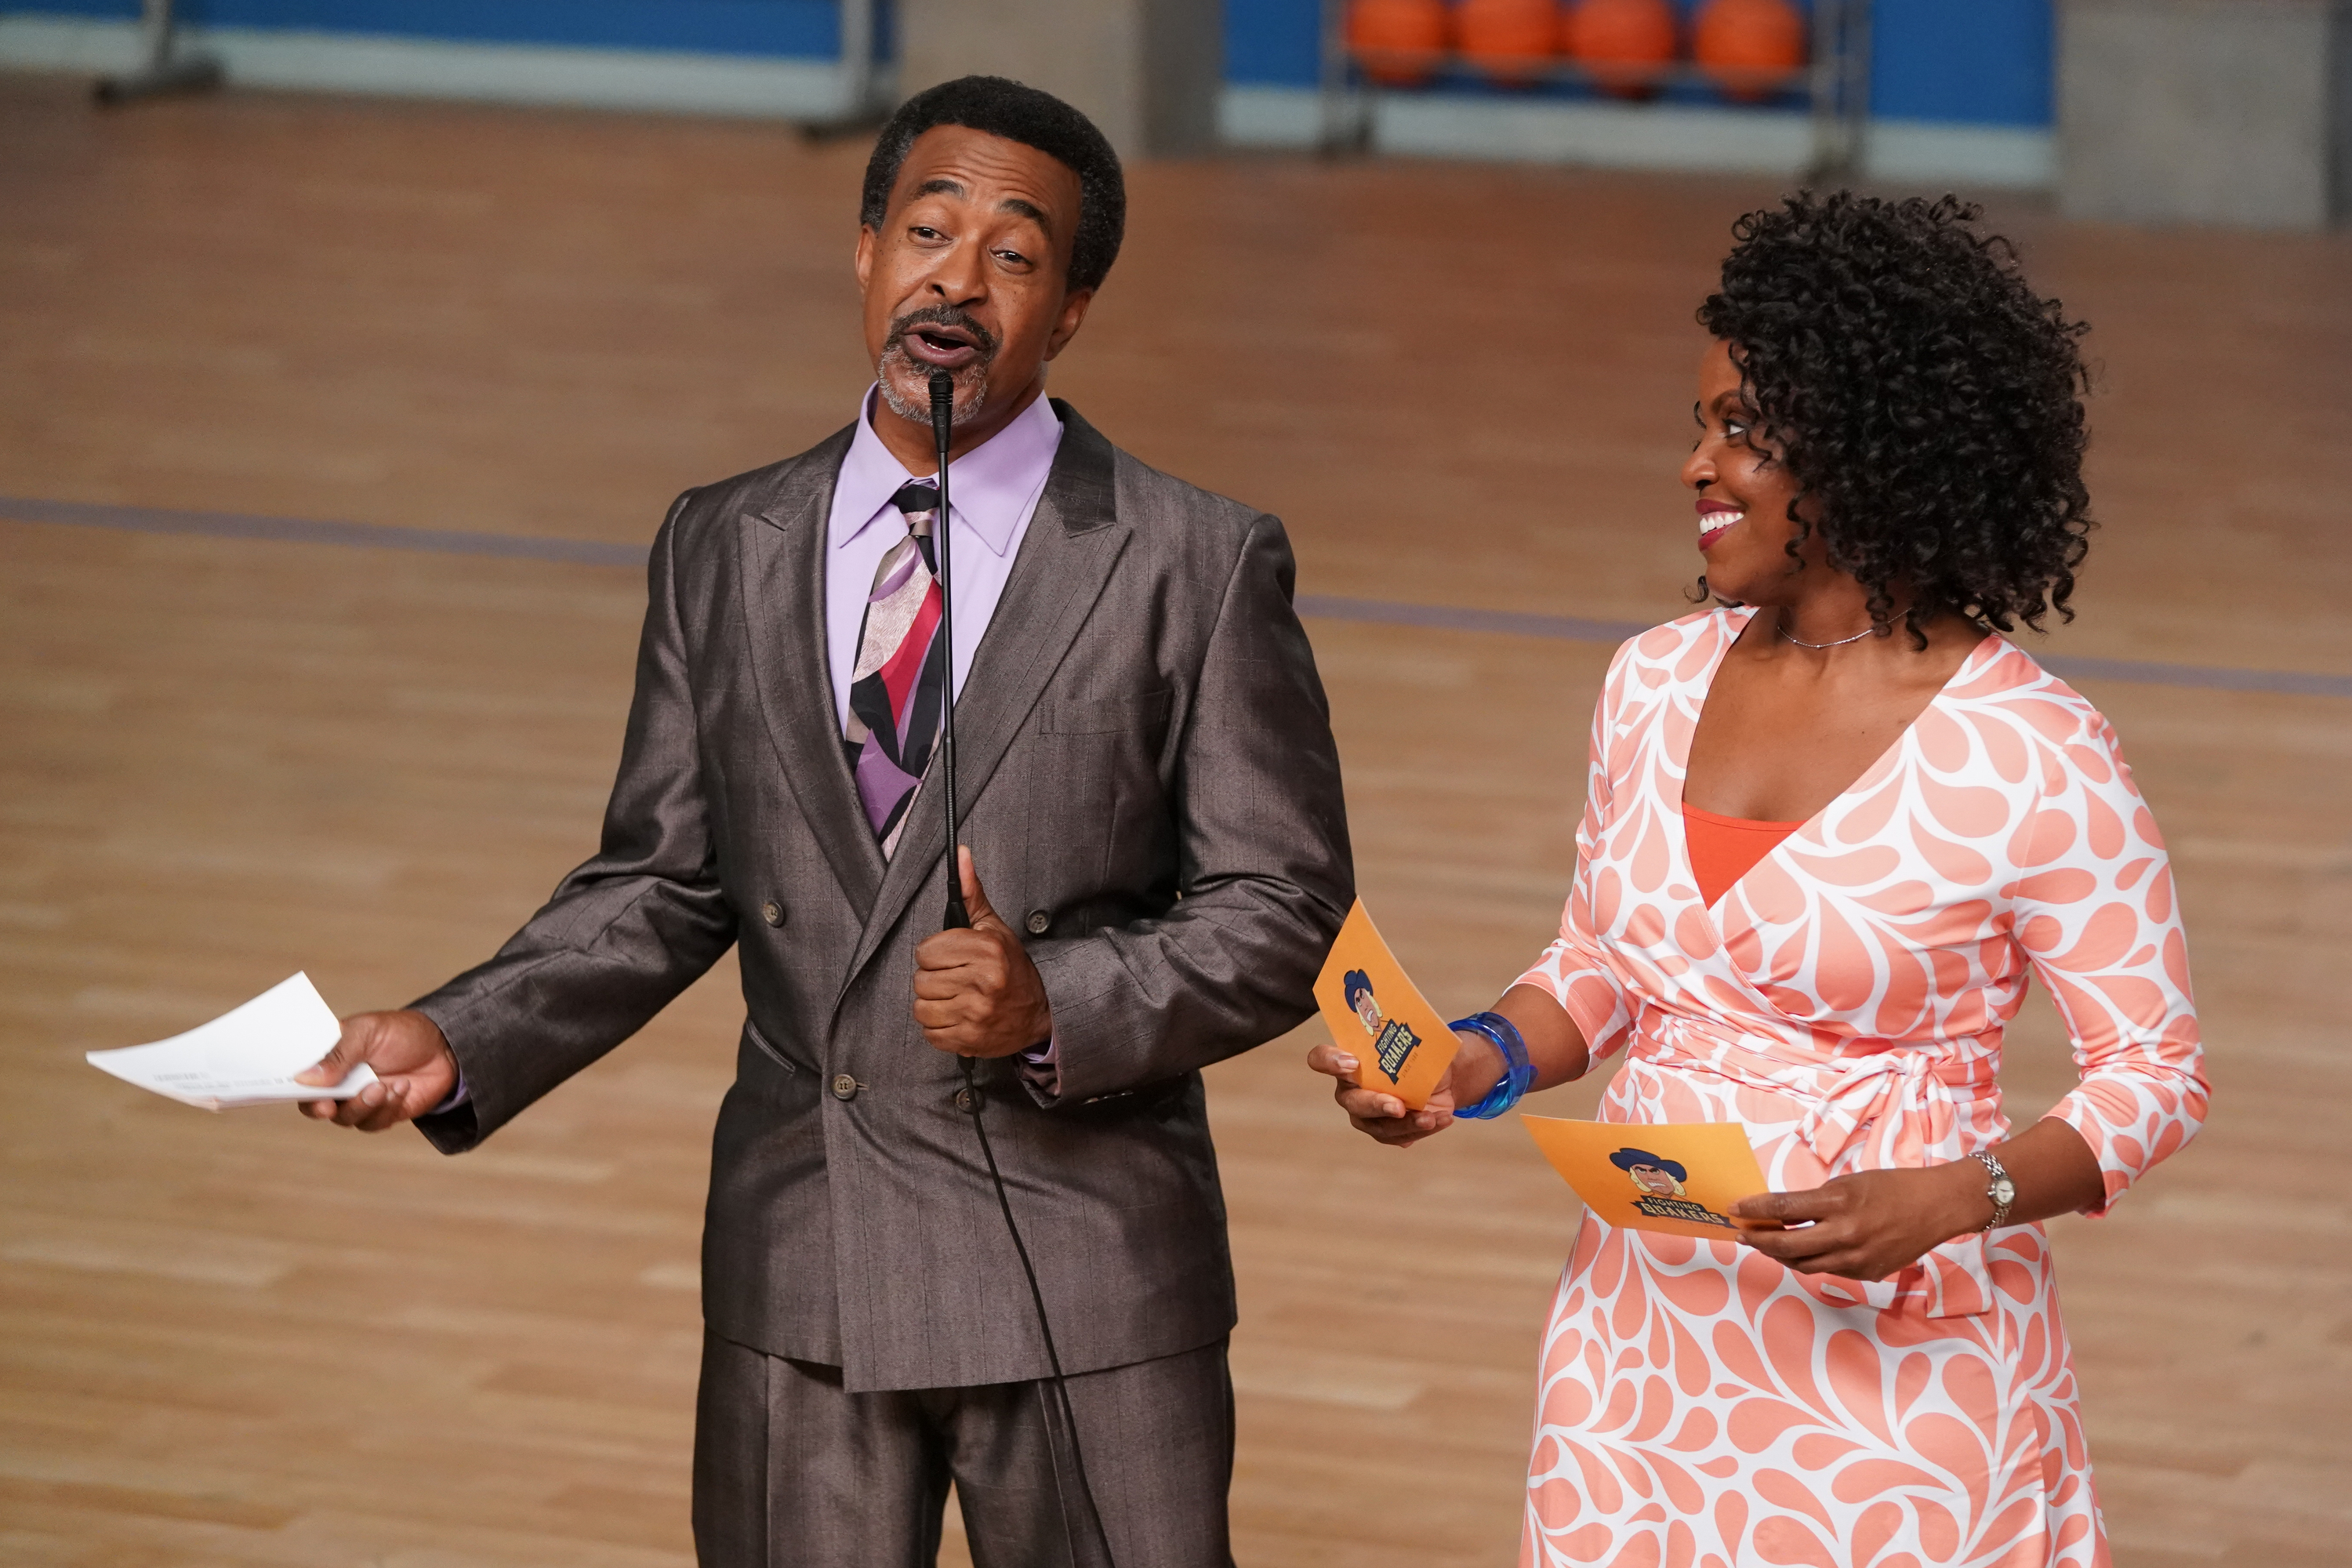 Tim Meadows and Haneefah Wood in Singled Out (2020)